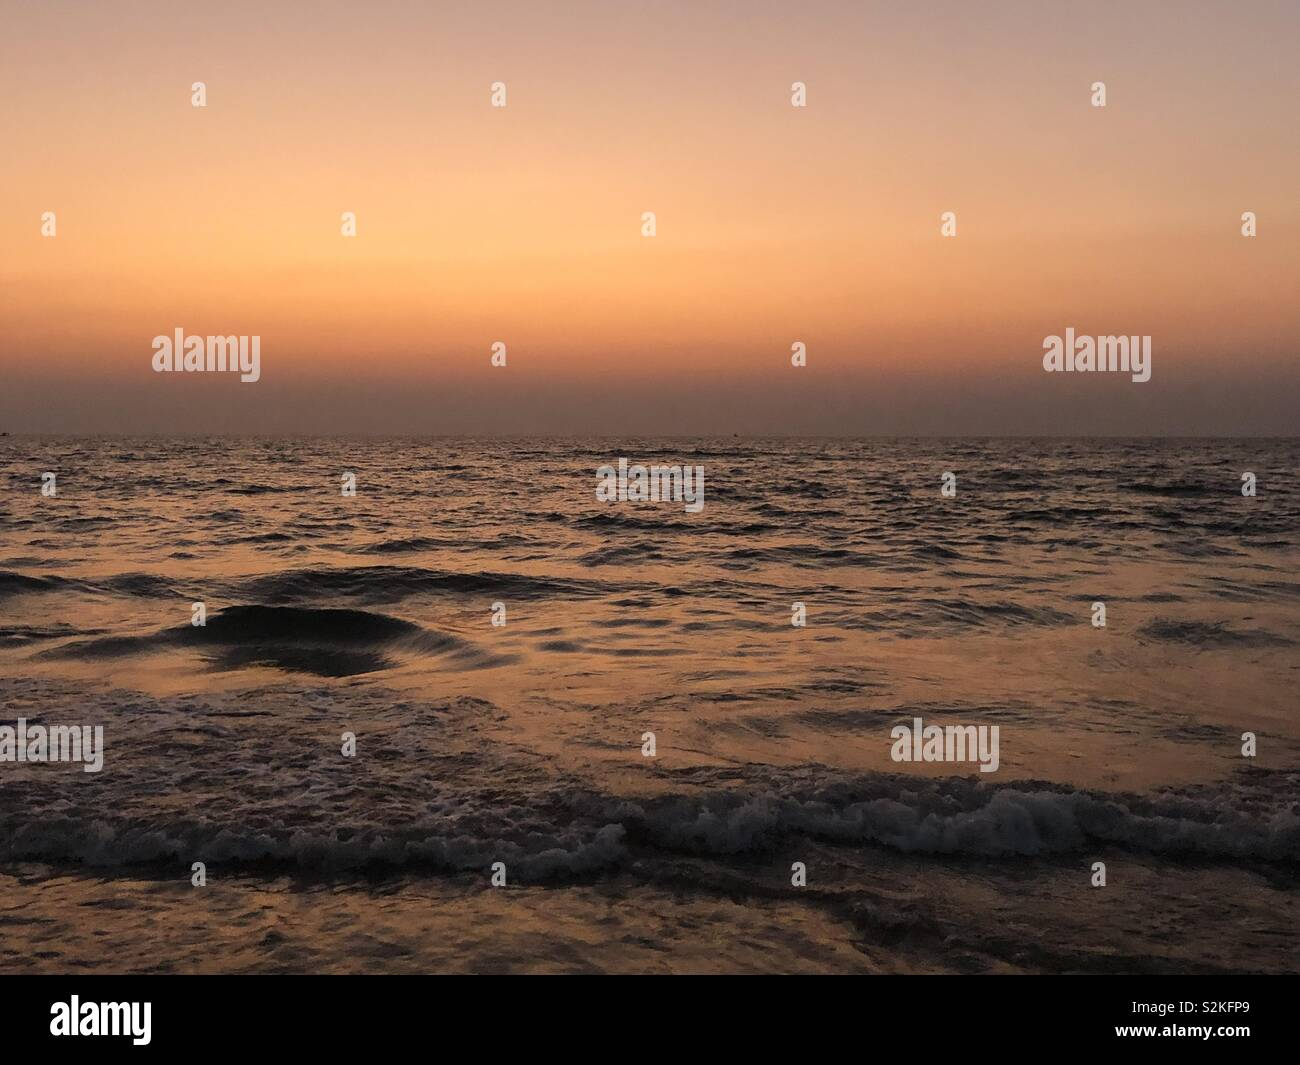 Dramatic evening by the water - Stock Image